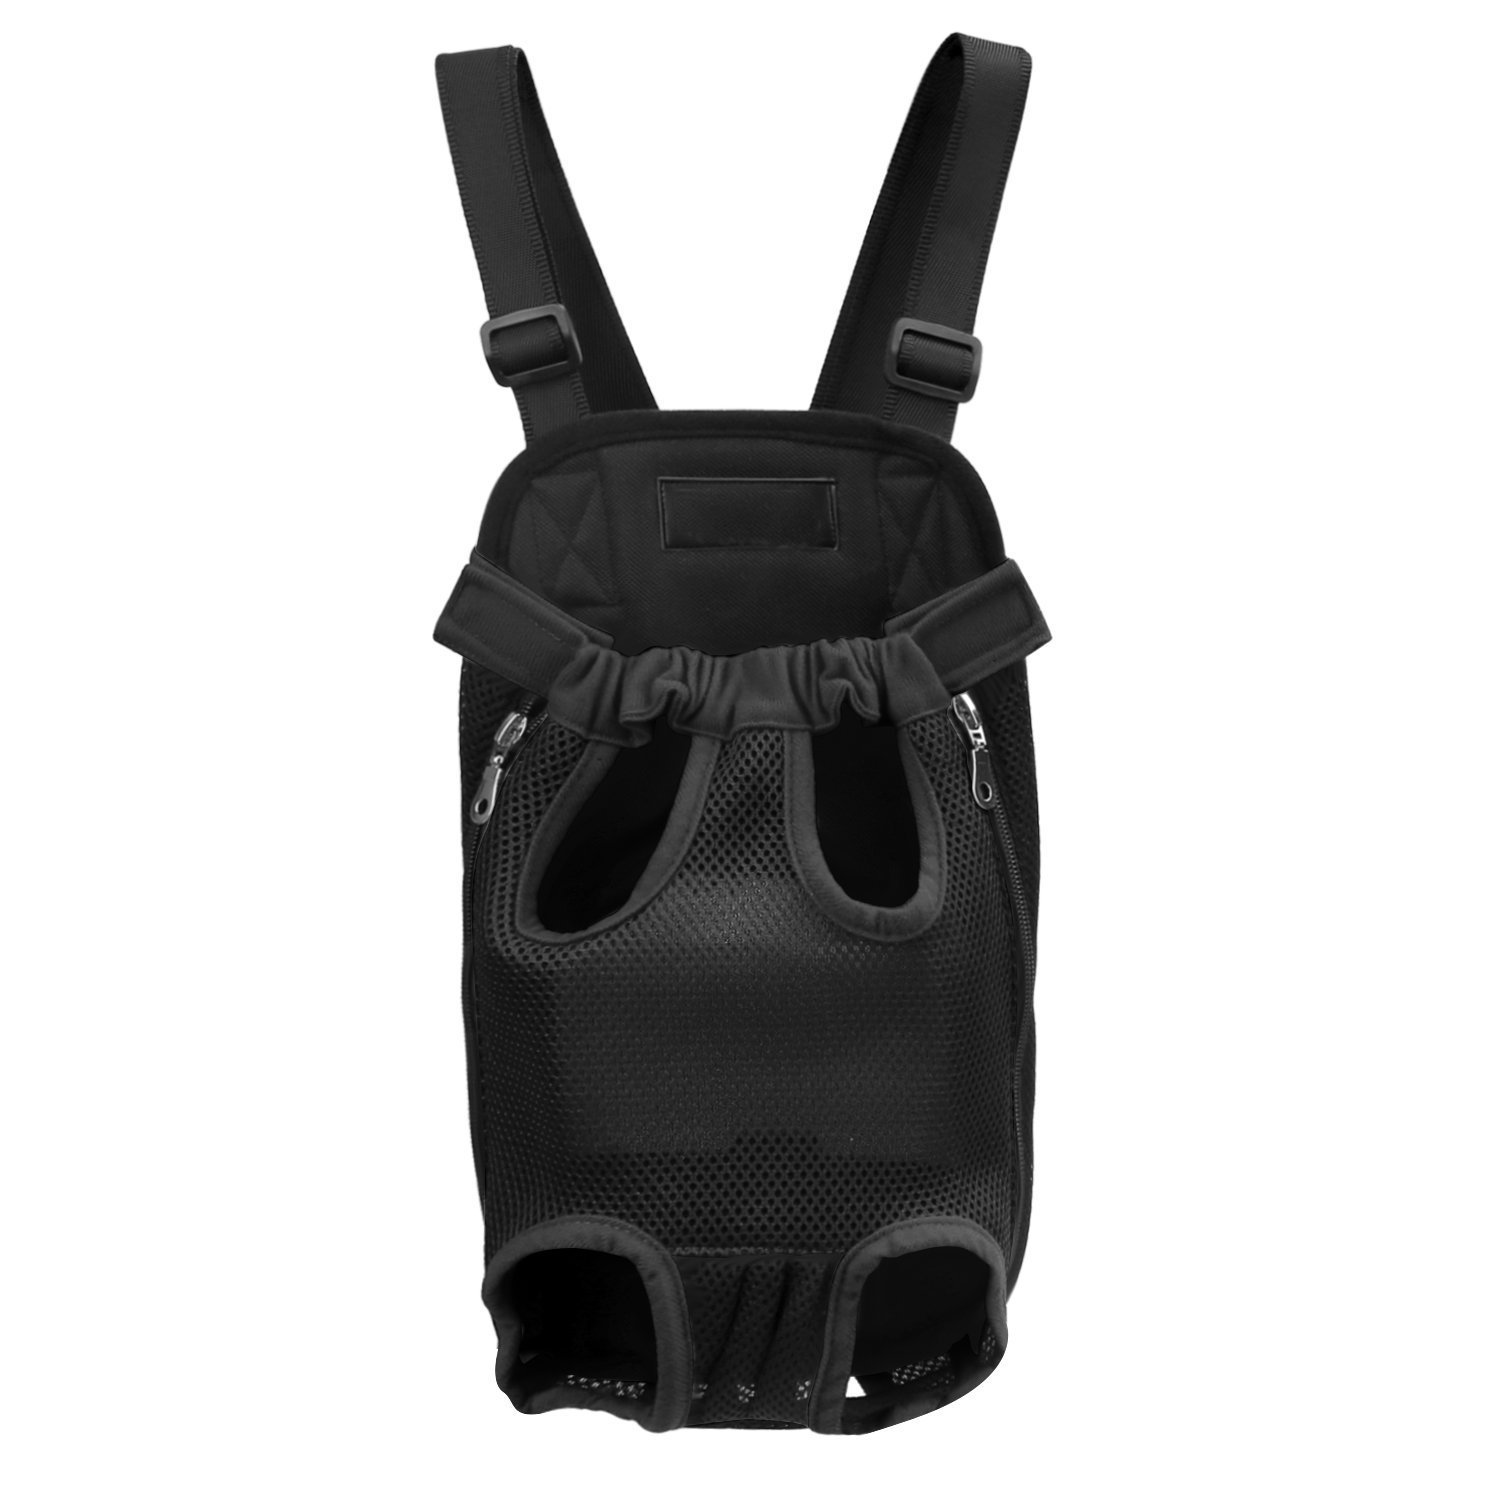 Santune Pet Dog Cat Carrier Front Backpack Black,Adjustable Shoulder Strap Legs Out Front Chest Travel Backpack for Small Dog (Black, L)